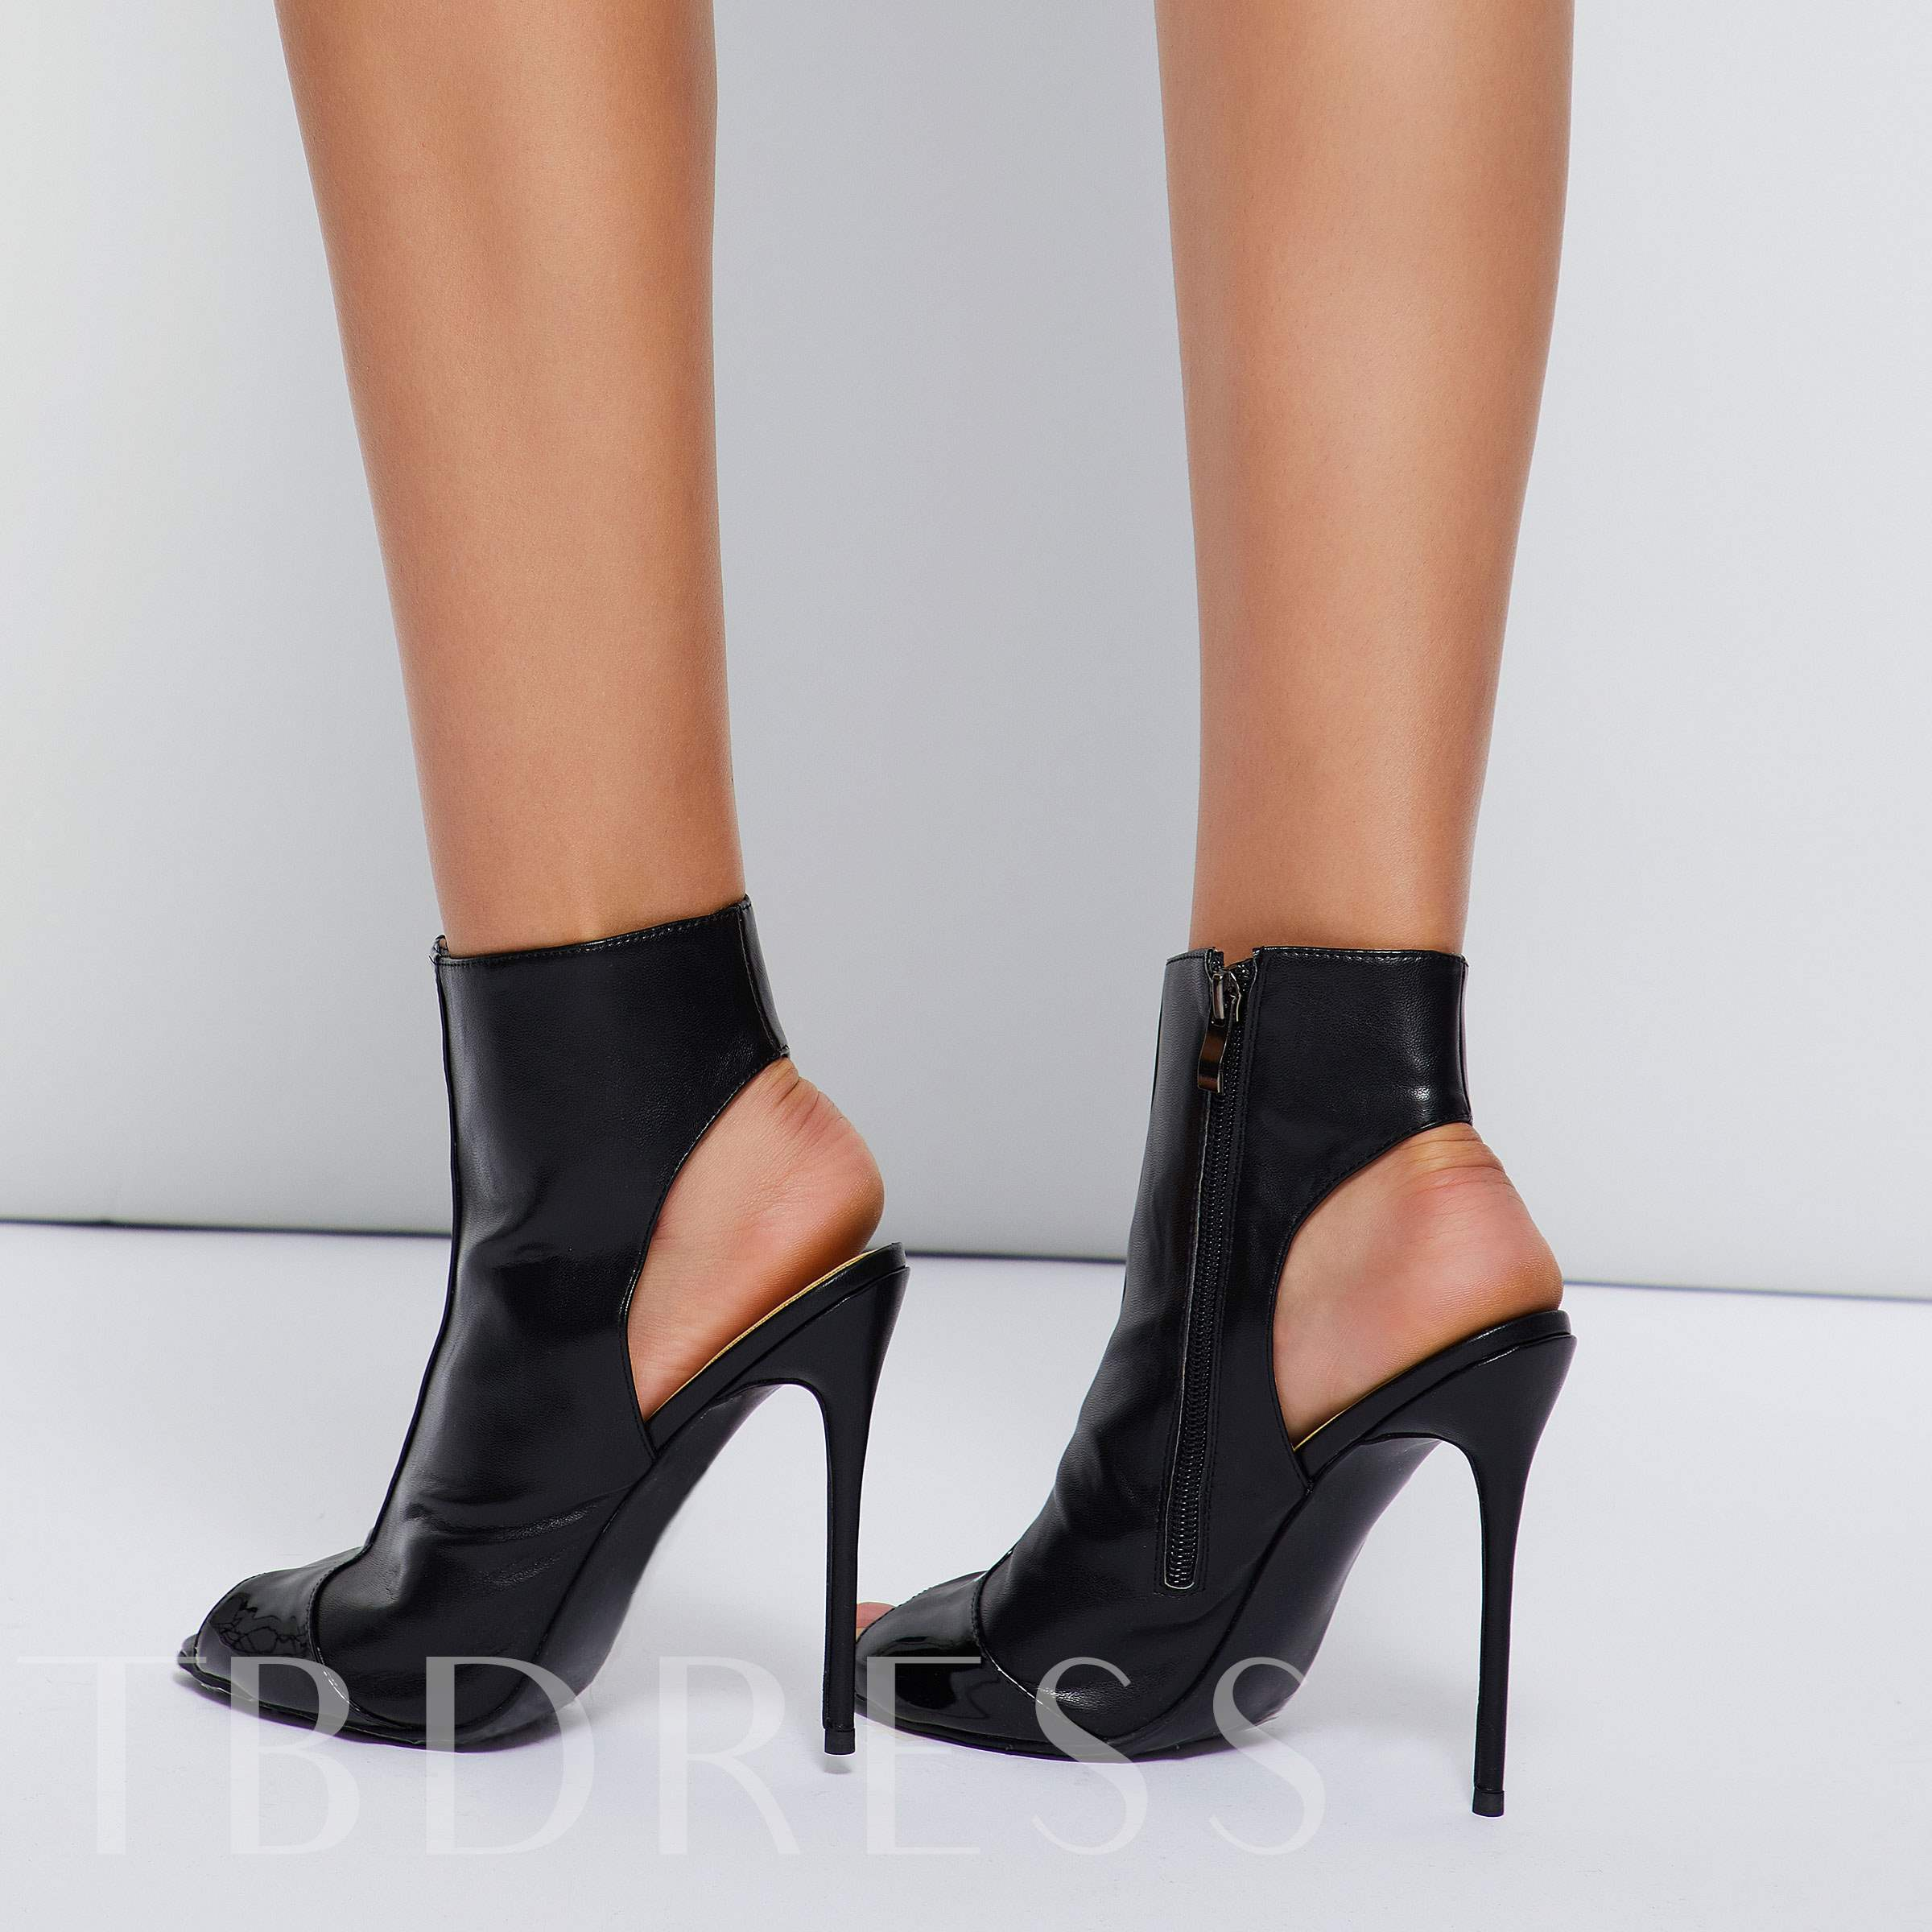 Peep Toe Black Shoes Women's Booties